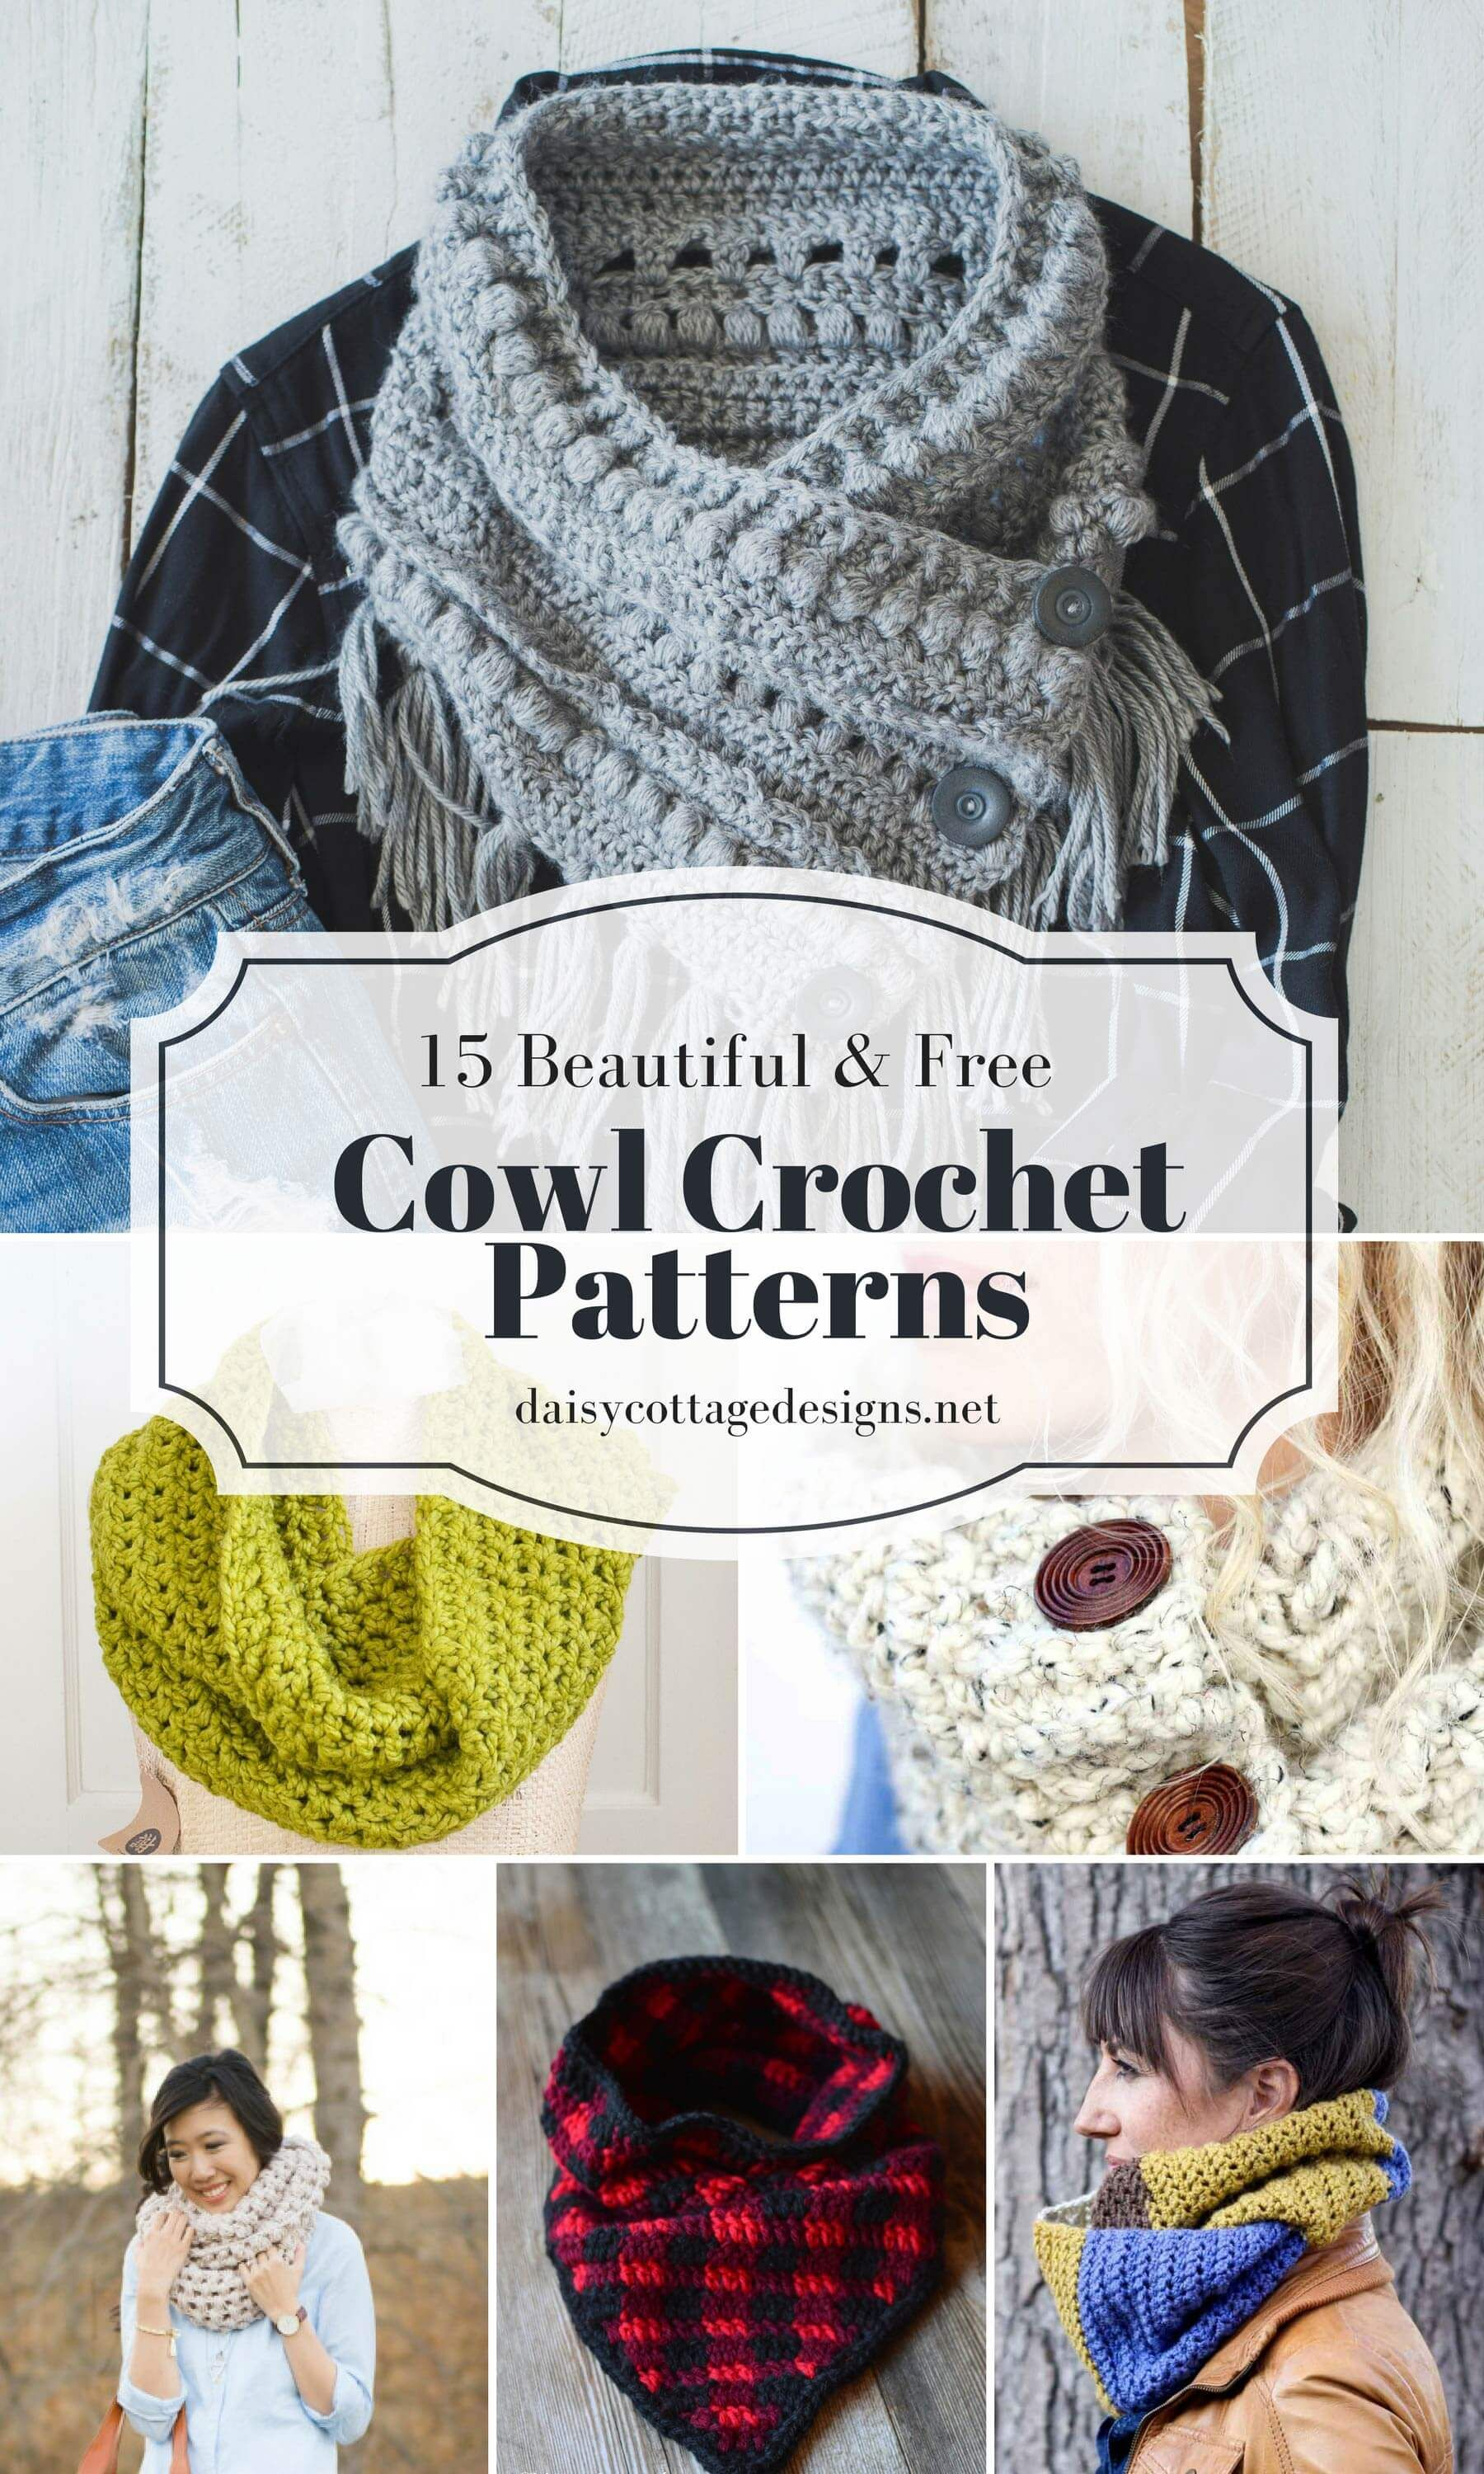 Free Cowl Crochet Patterns: 15 Beautiful Projects | Chal, Tejido y ...